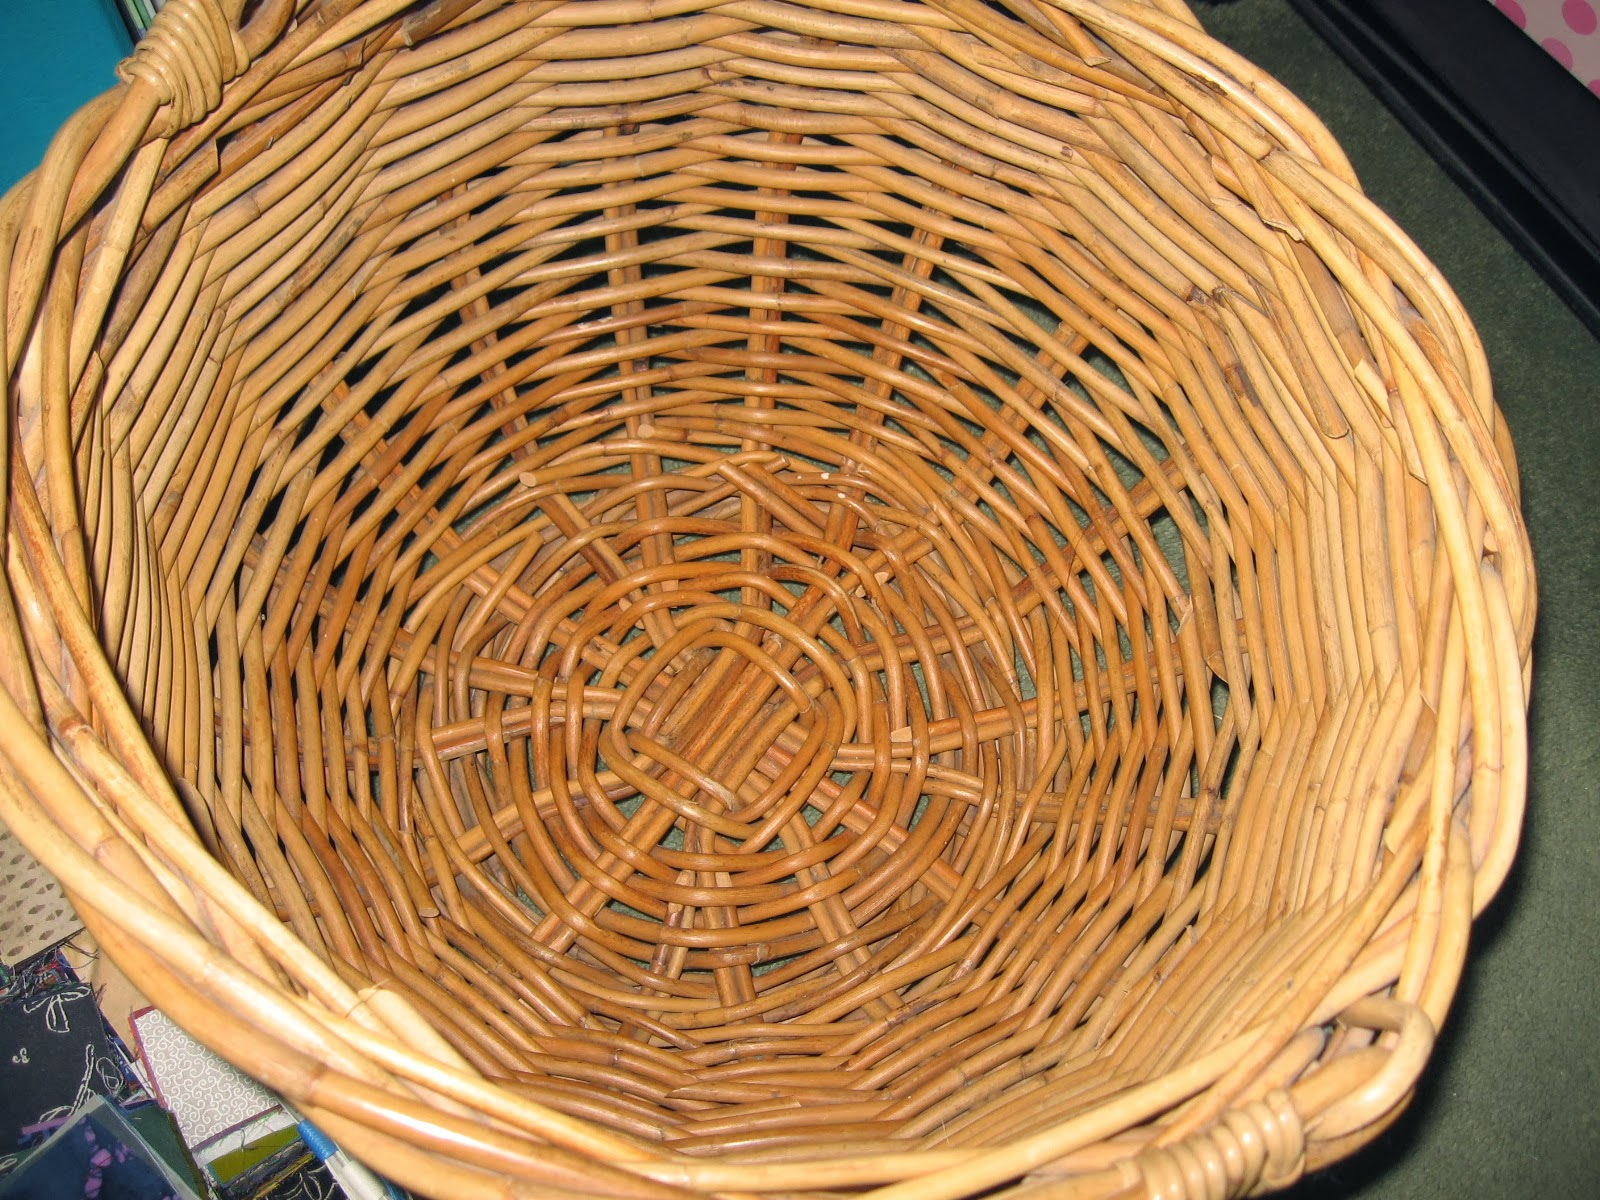 State of the Scrap Basket